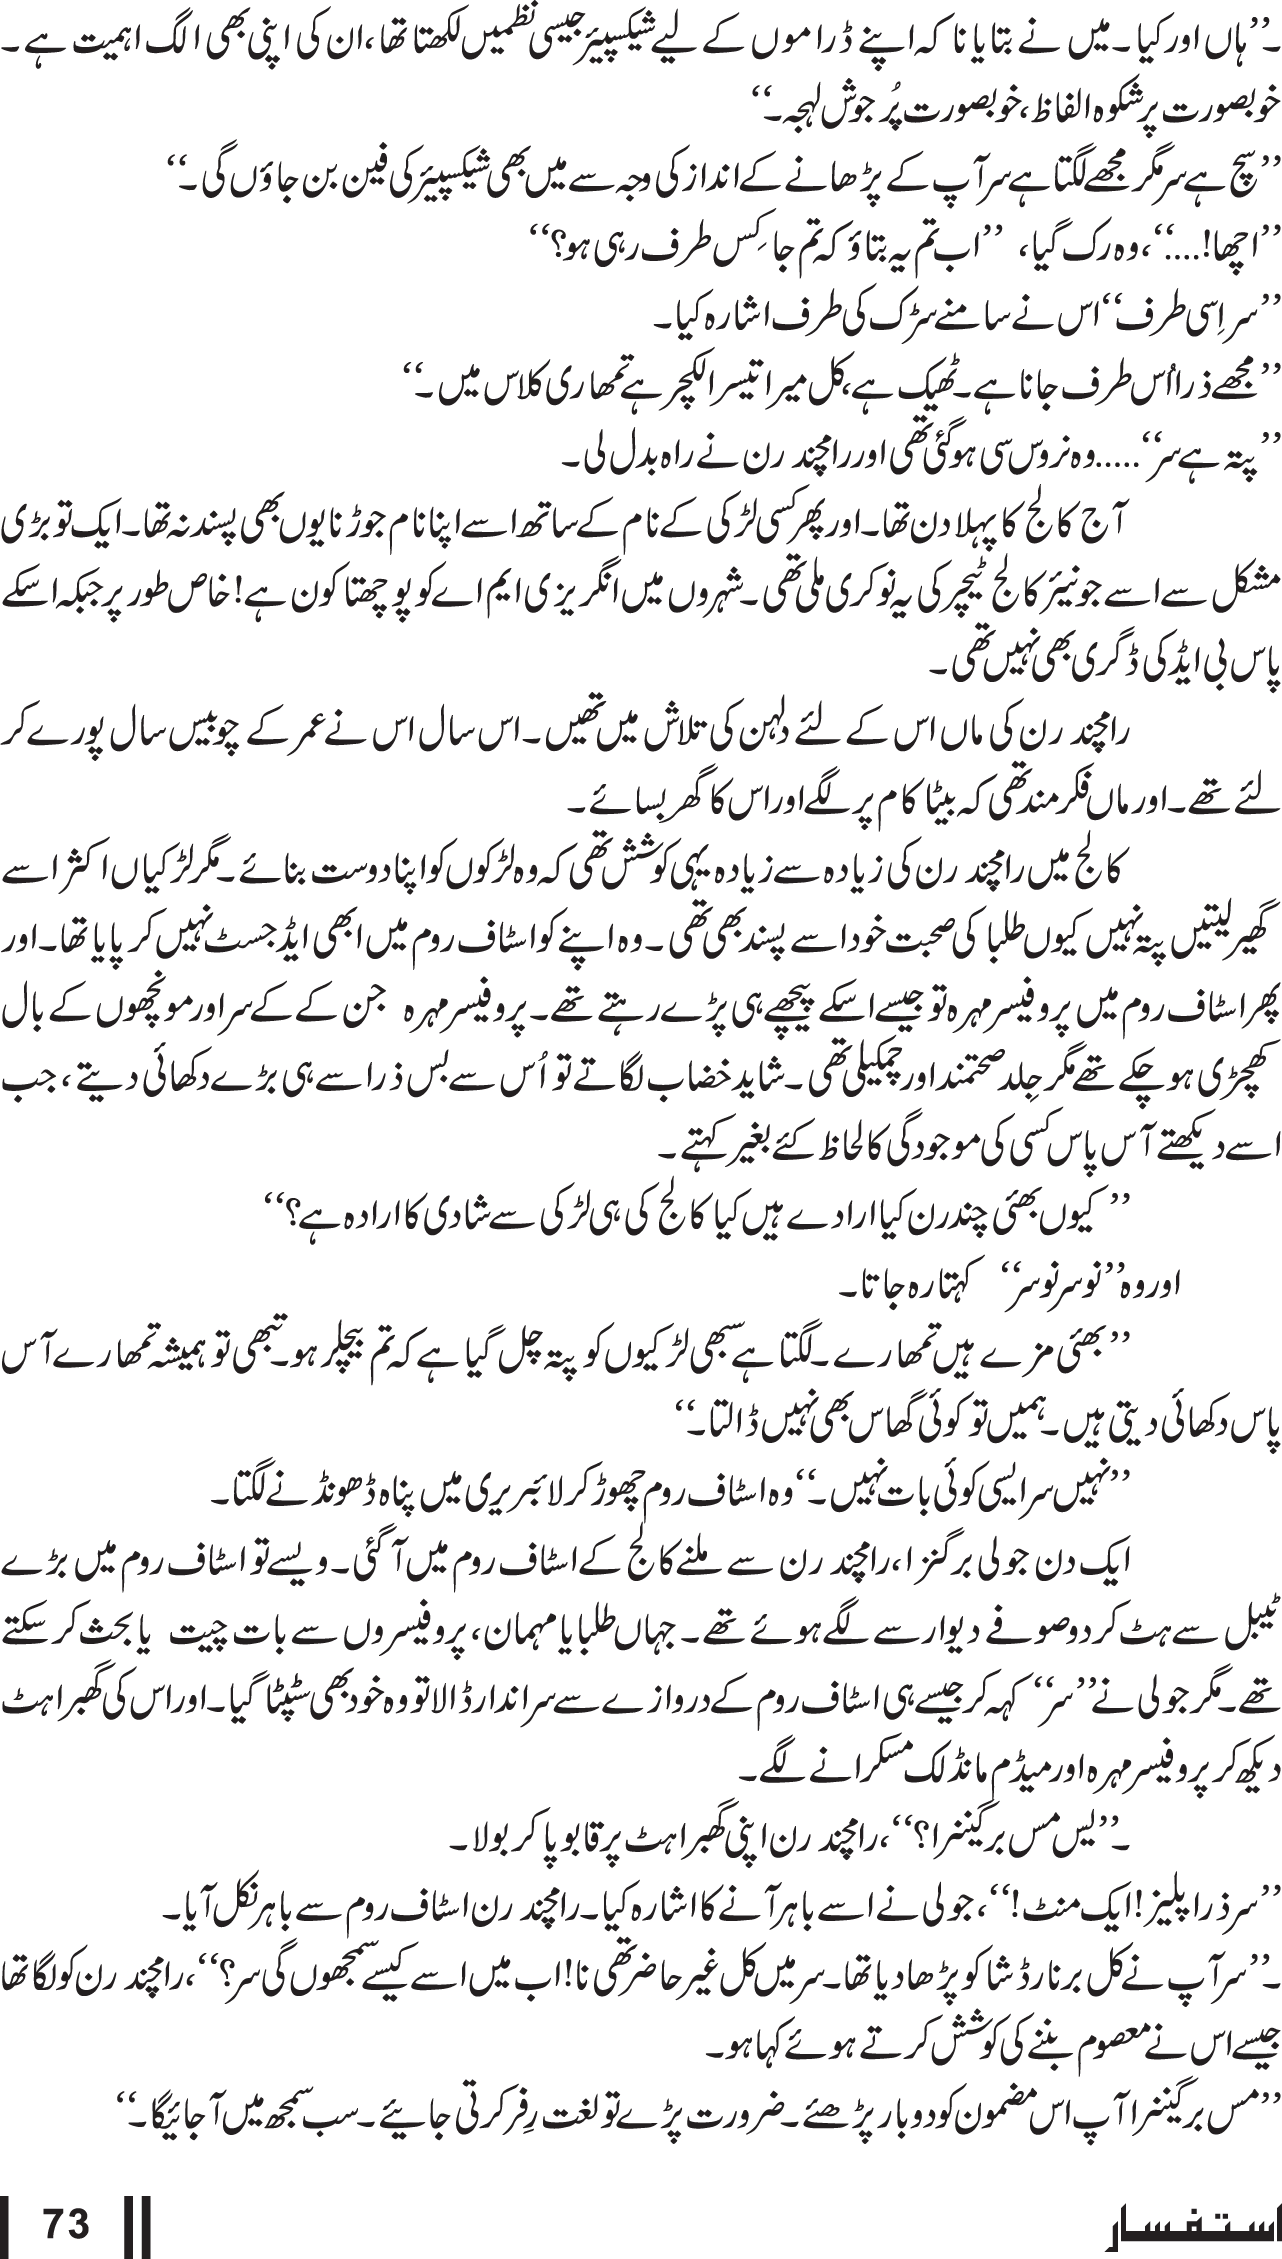 Second_Issue-73